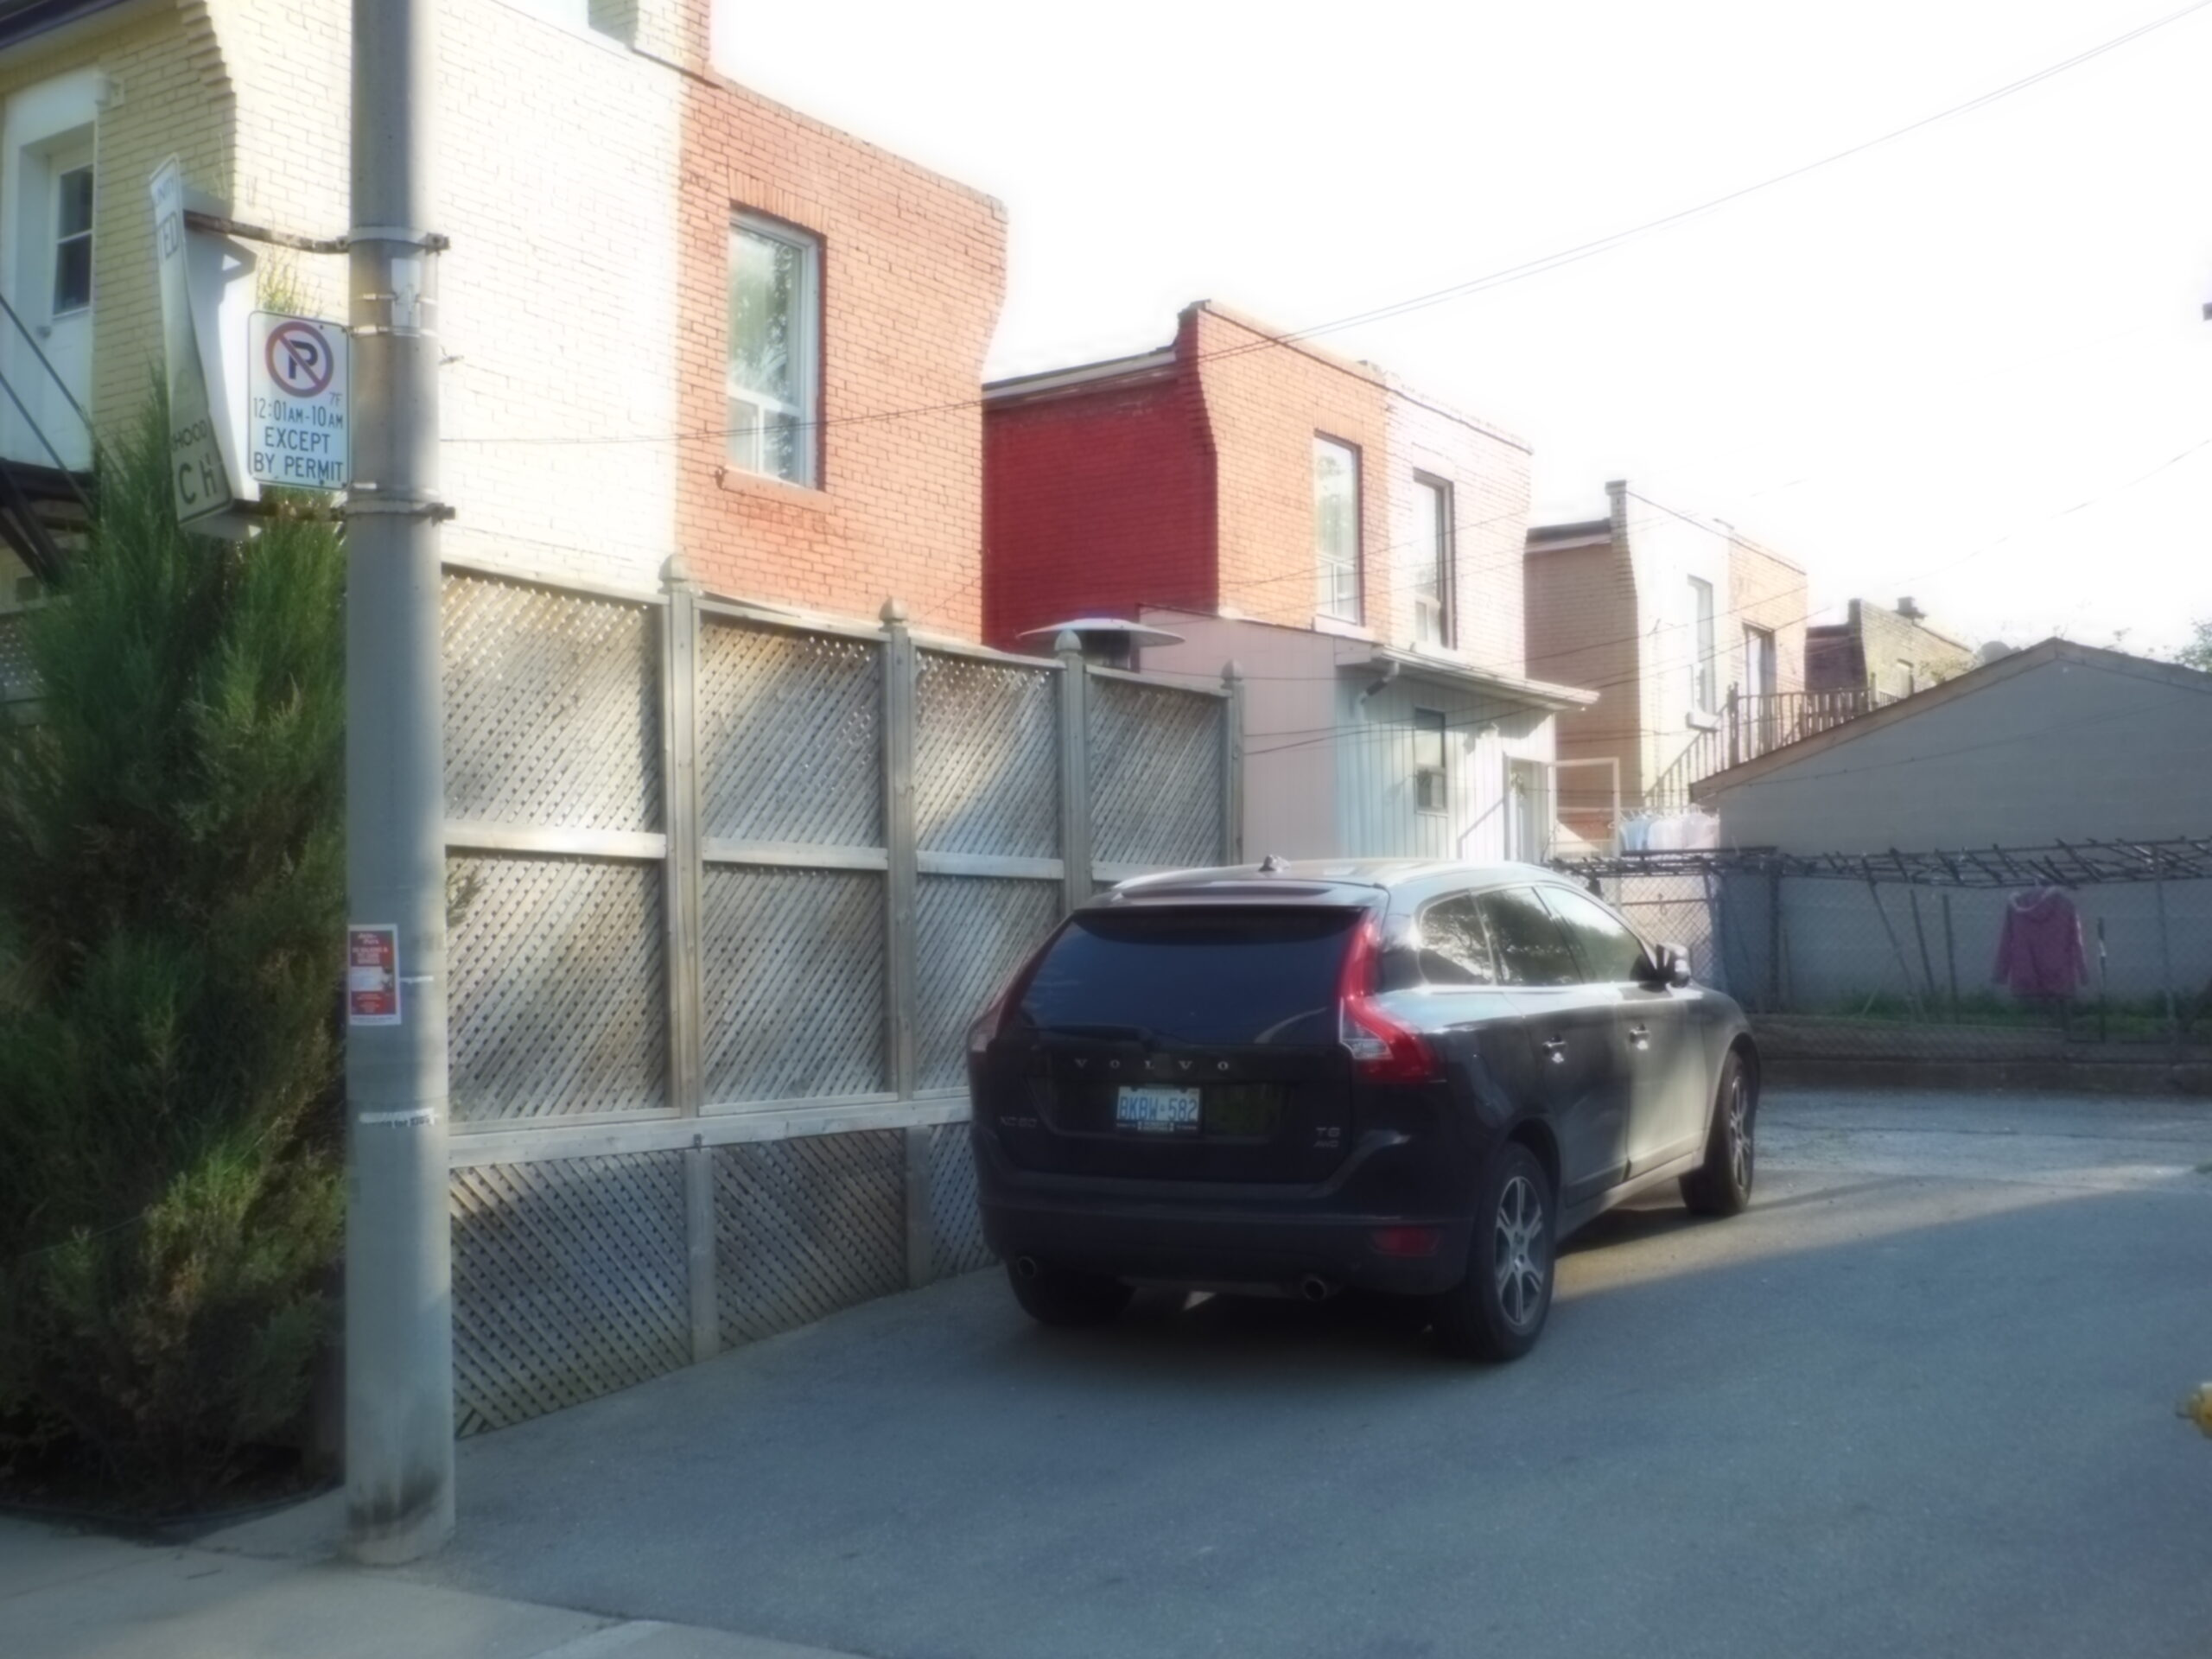 LESLIEVILLE: 2A Tiverton Ave. – 2 PARKING SPOTS AVAILABLE